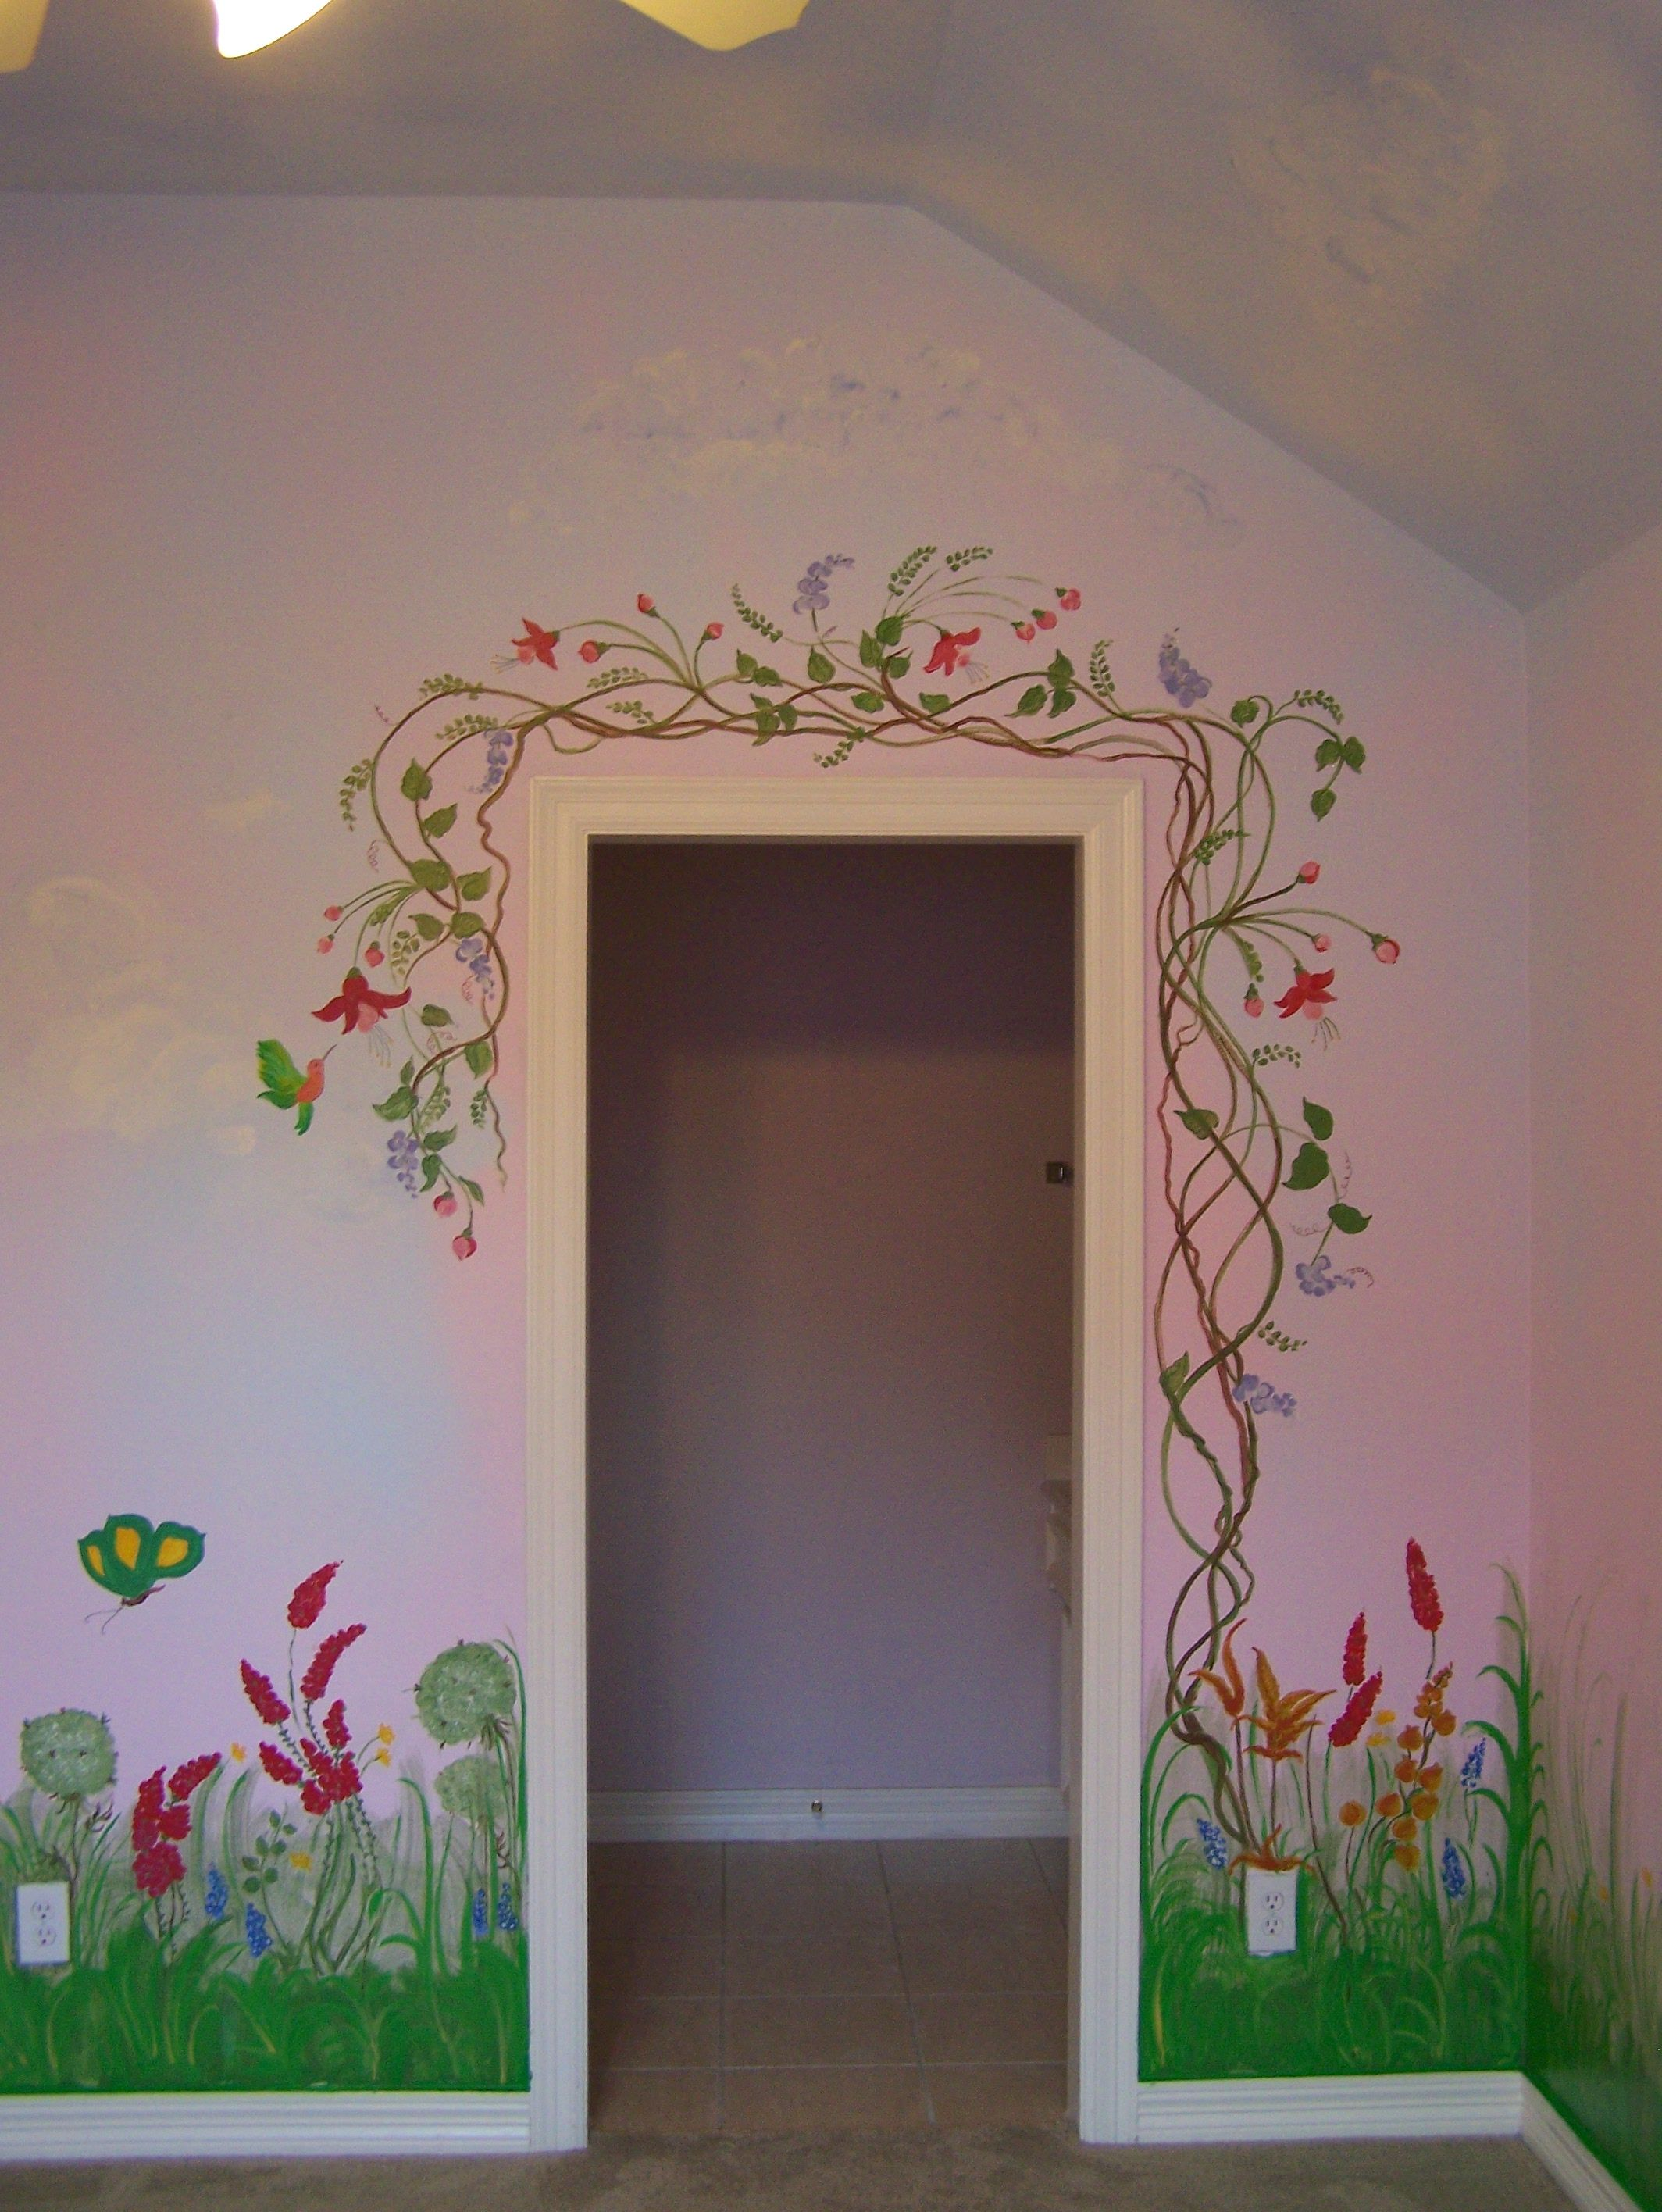 Garden Mural Around The Door Frame Door Murals Kids Wall Murals Garden Mural